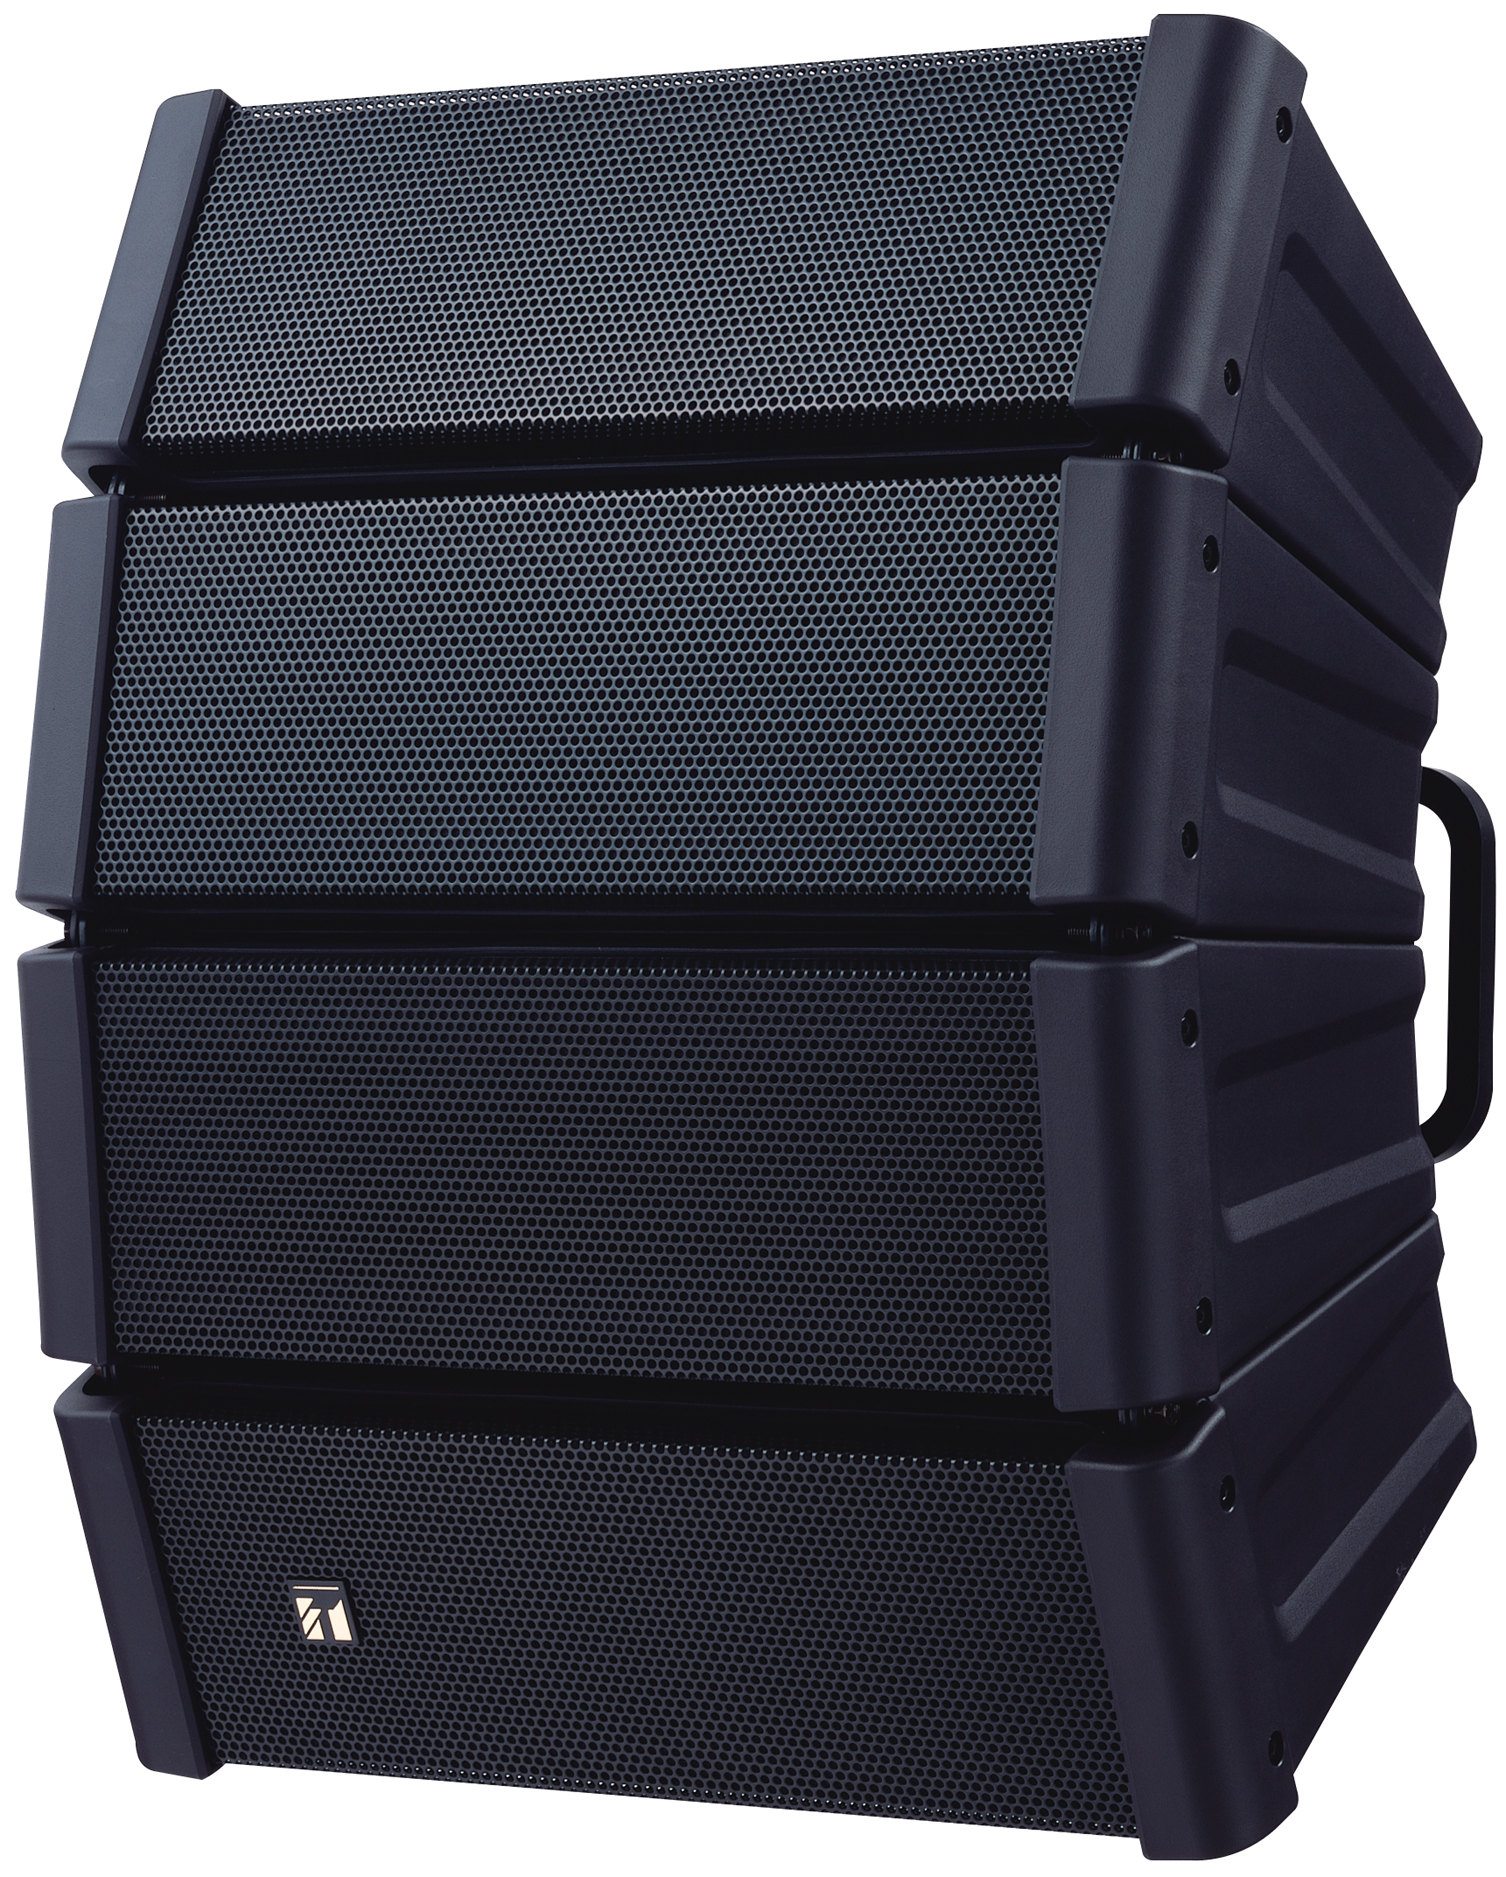 TOA HX-5B Compact Line Array Speaker System (Black)